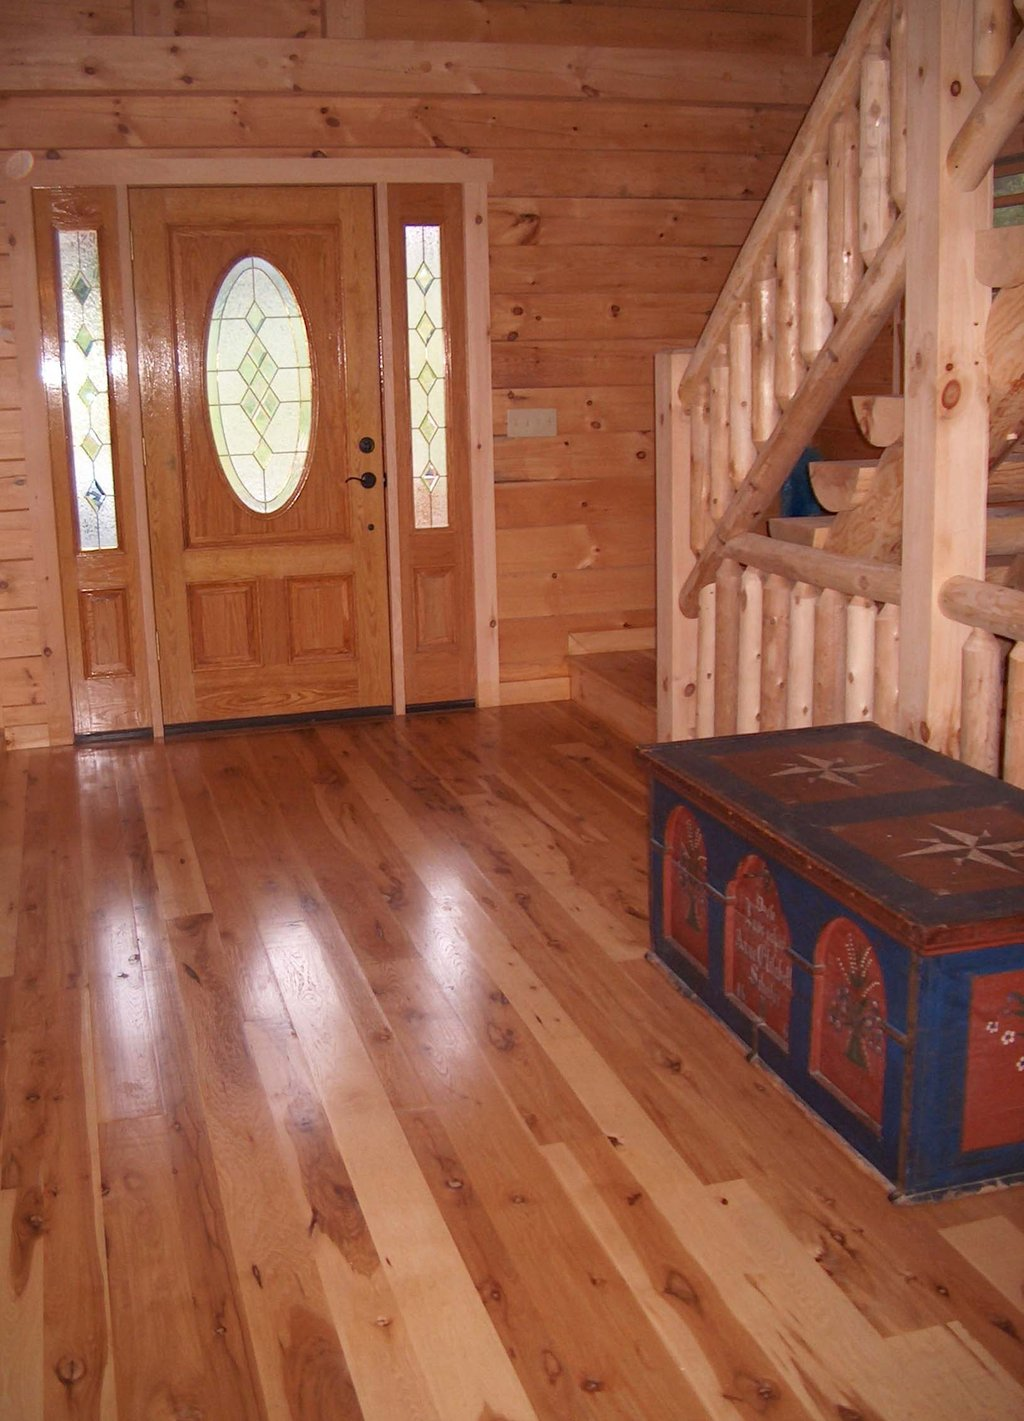 Hickory Plank Floor American Hardwood Theydesign Drawbacks To Hickory Wood Floors